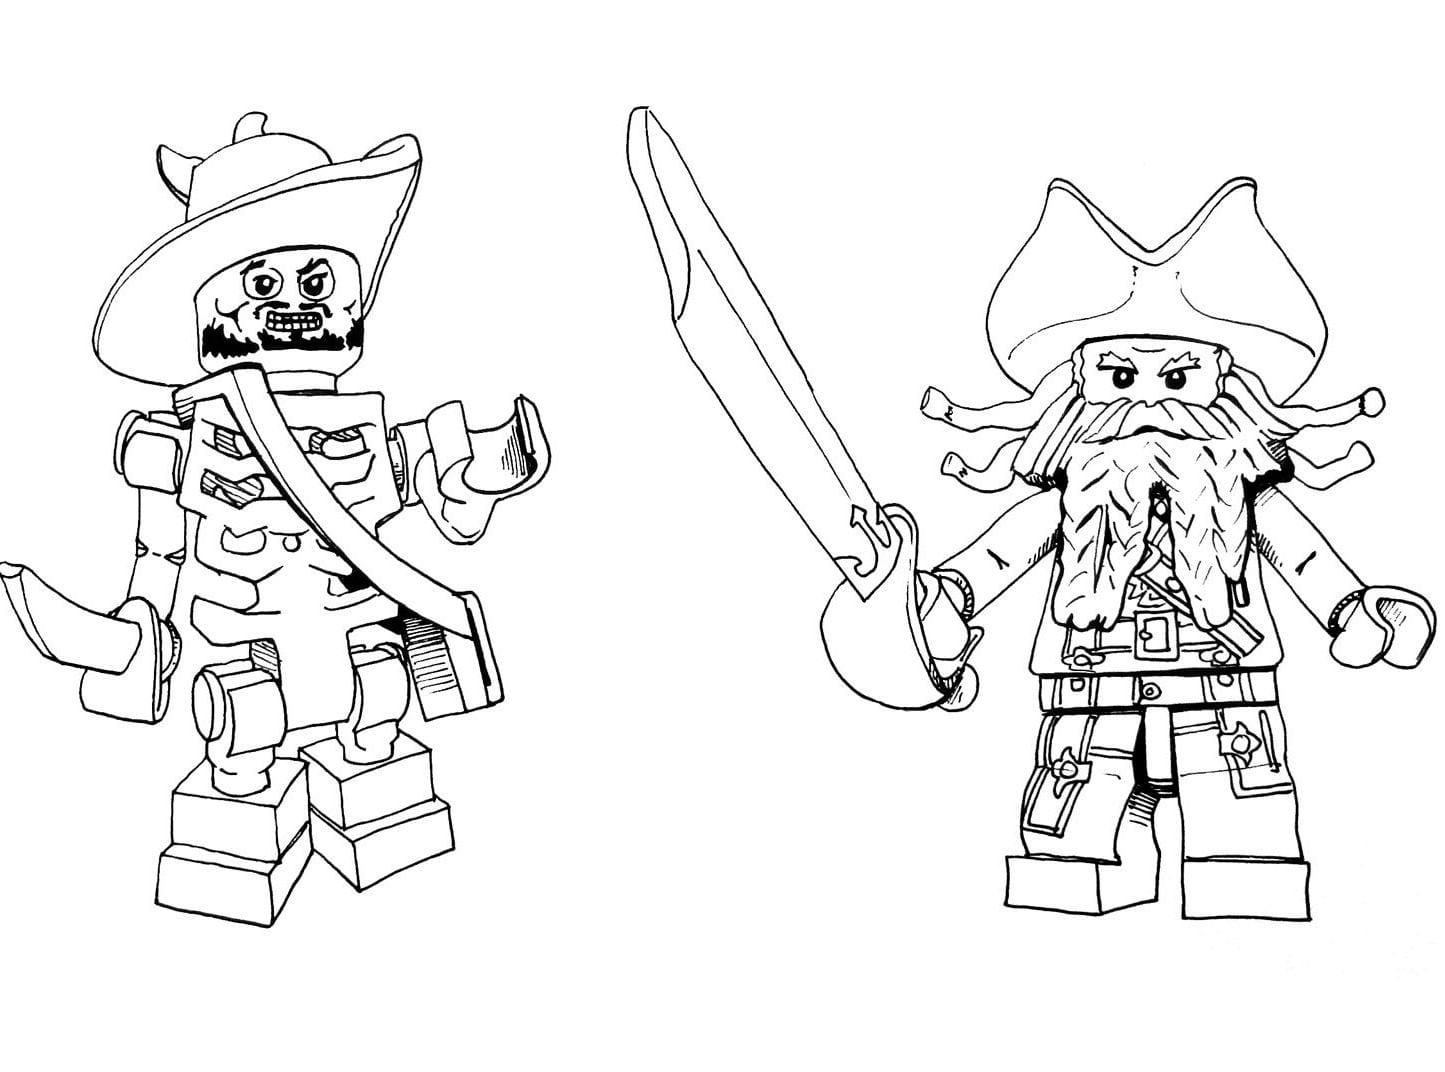 Lone Ranger Coloring Pages With Jack Sparrow